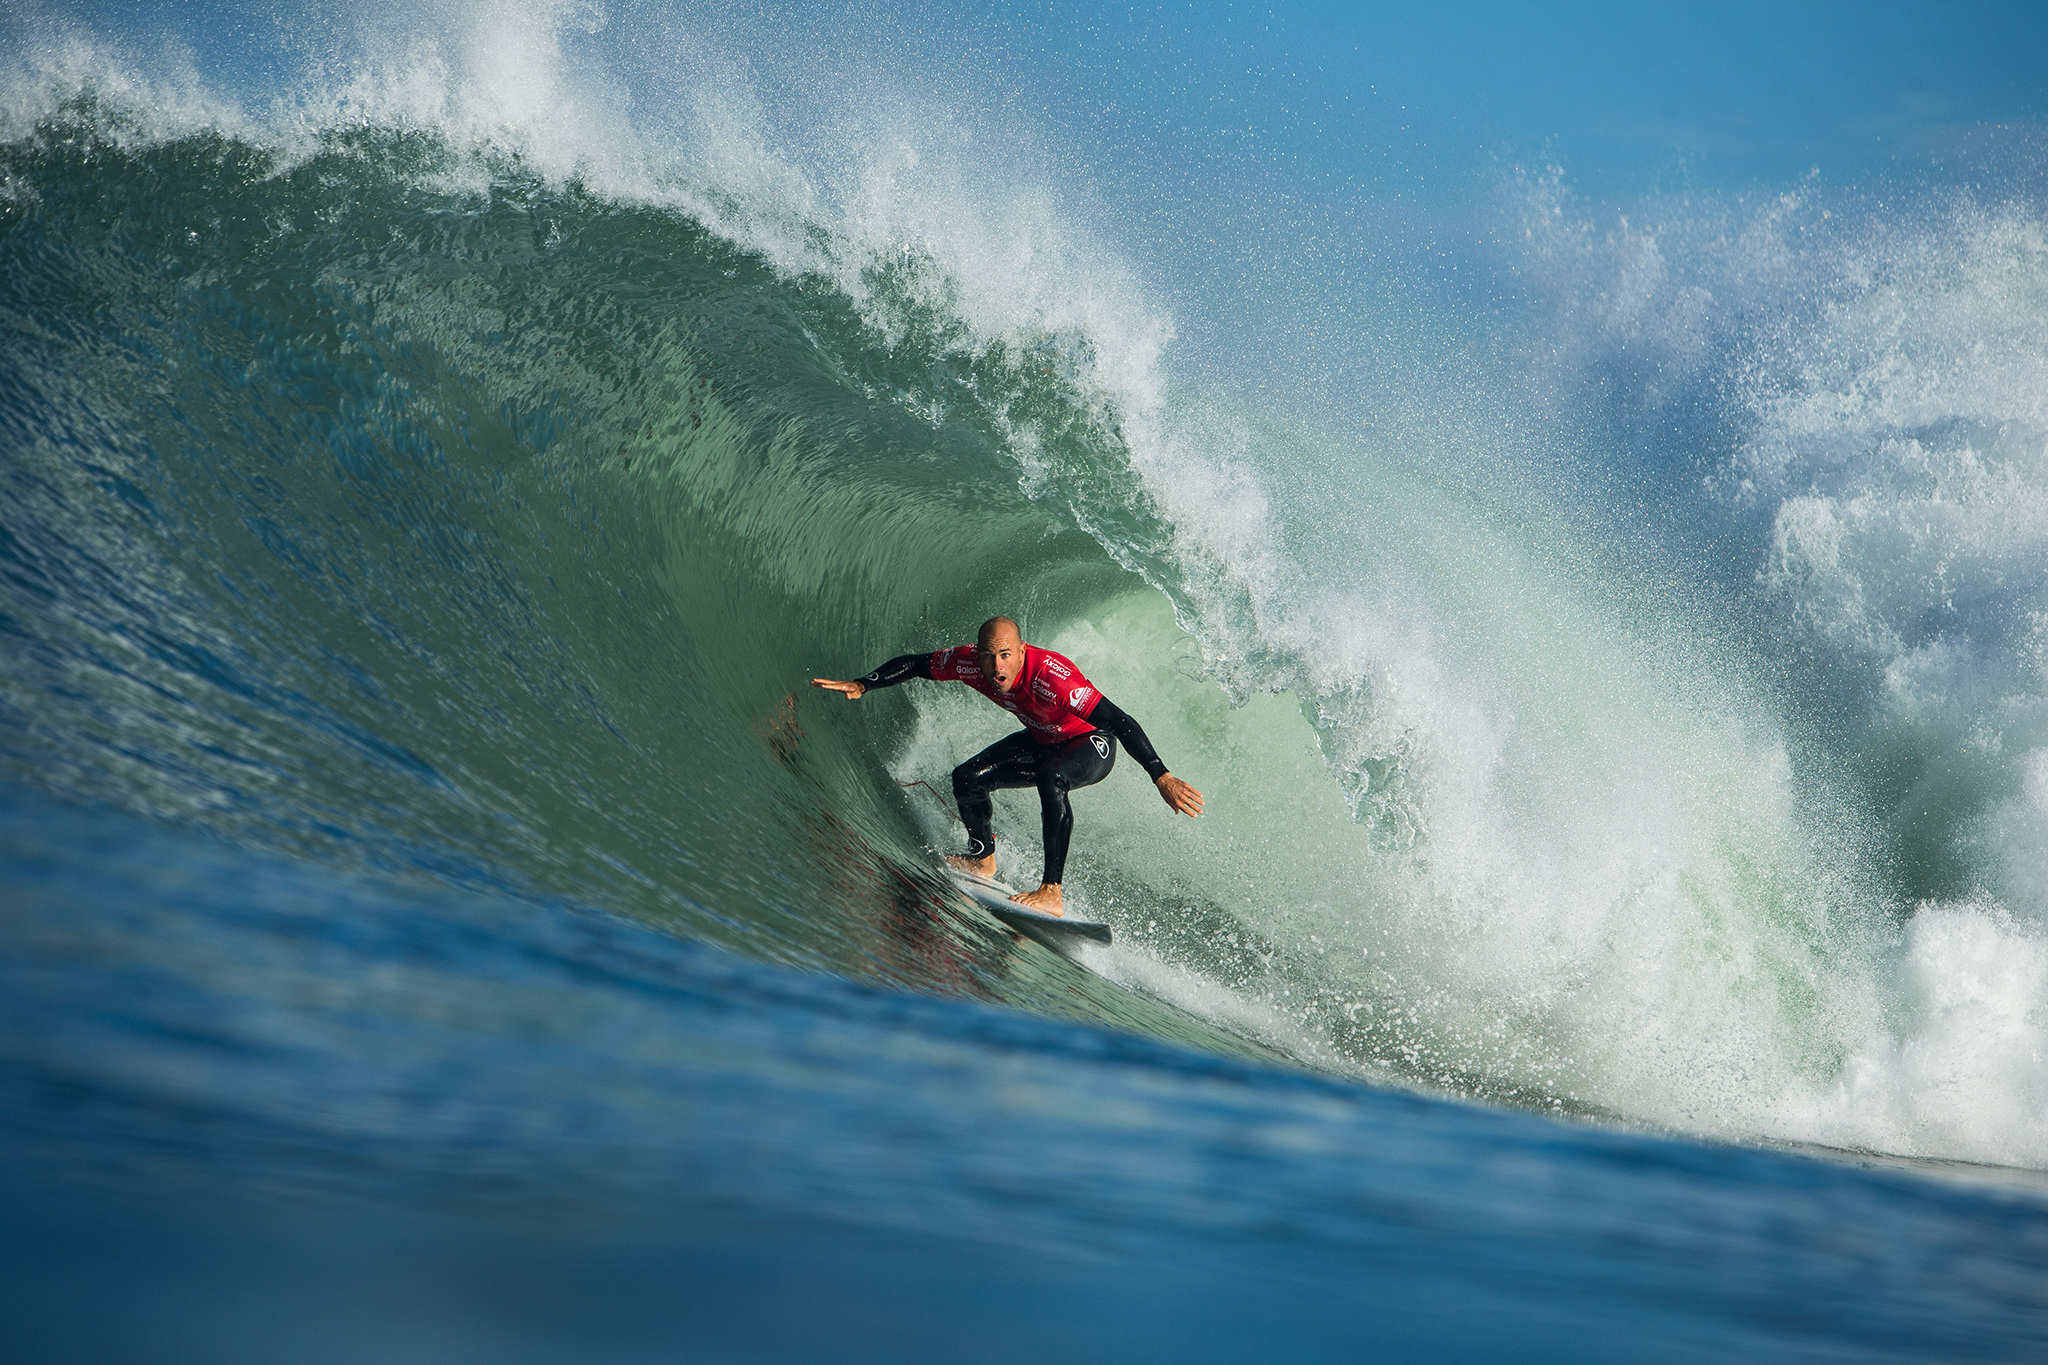 Kelly Slater of the USA (pictured) placing runner up at the Quiksilver Pro France during Round 1 on Thursday October 8, 2015.